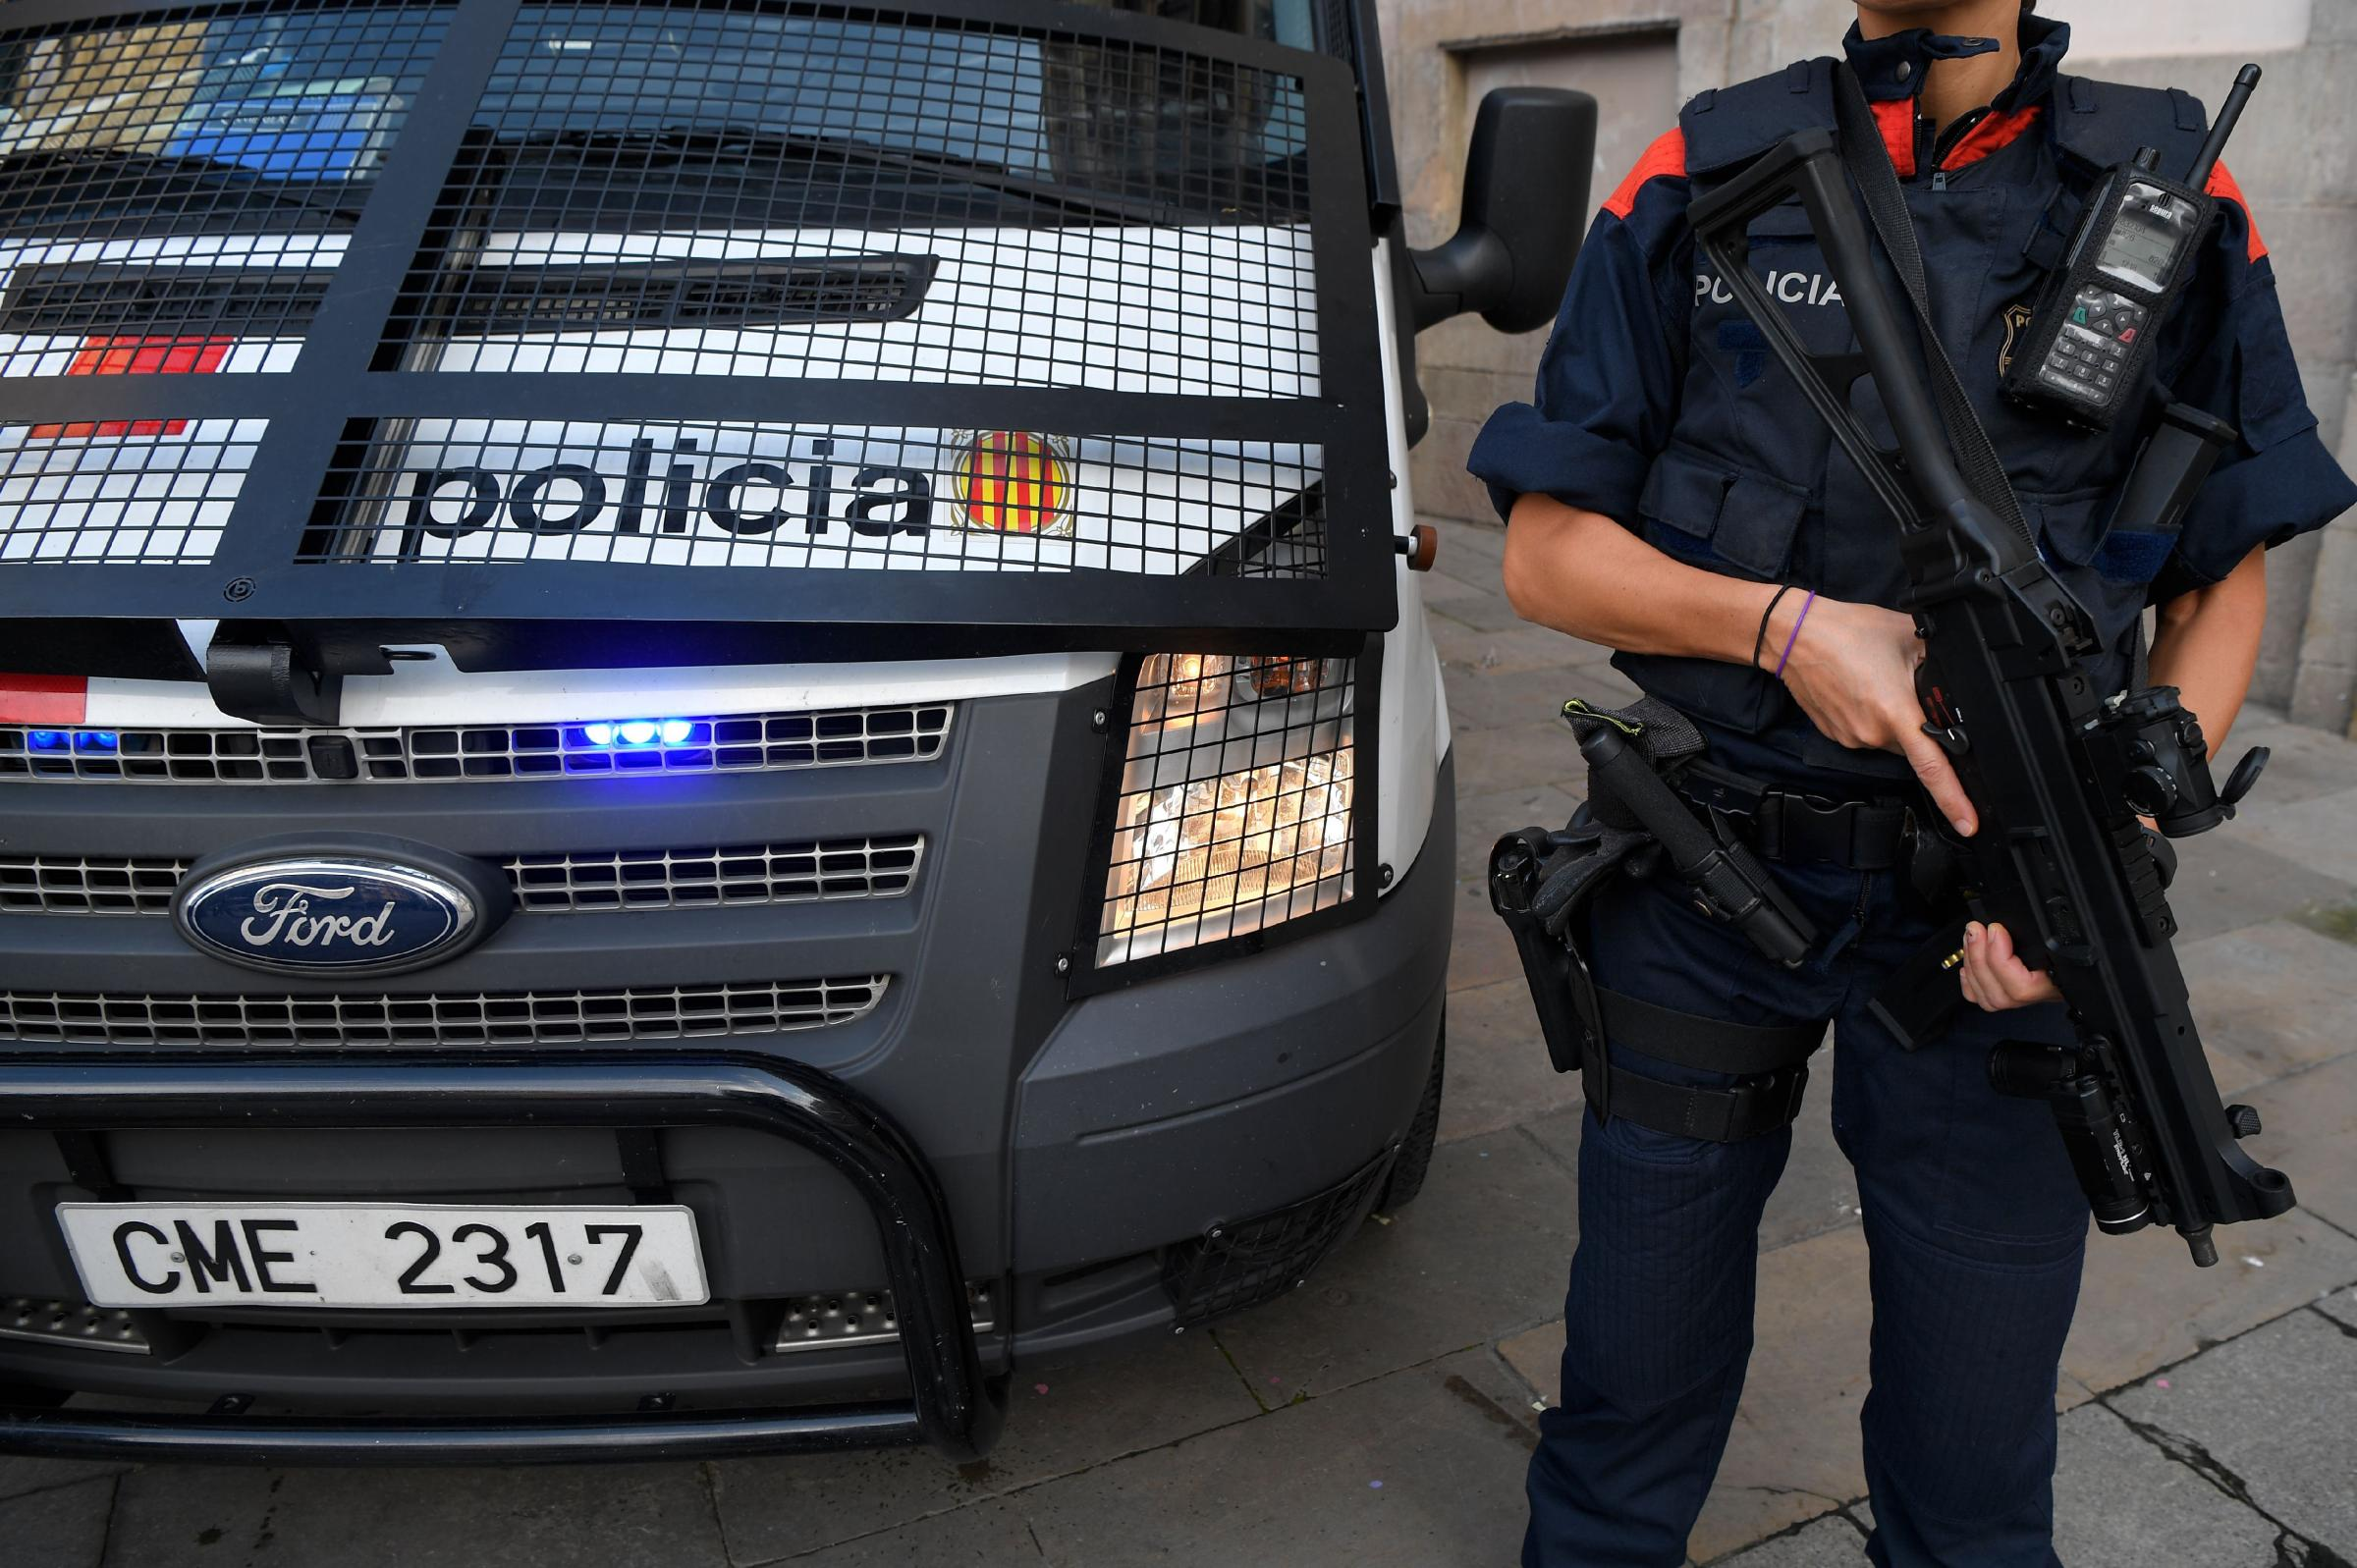 The Spanish Guardia Civil officers had their identities hidden as they gave evidence